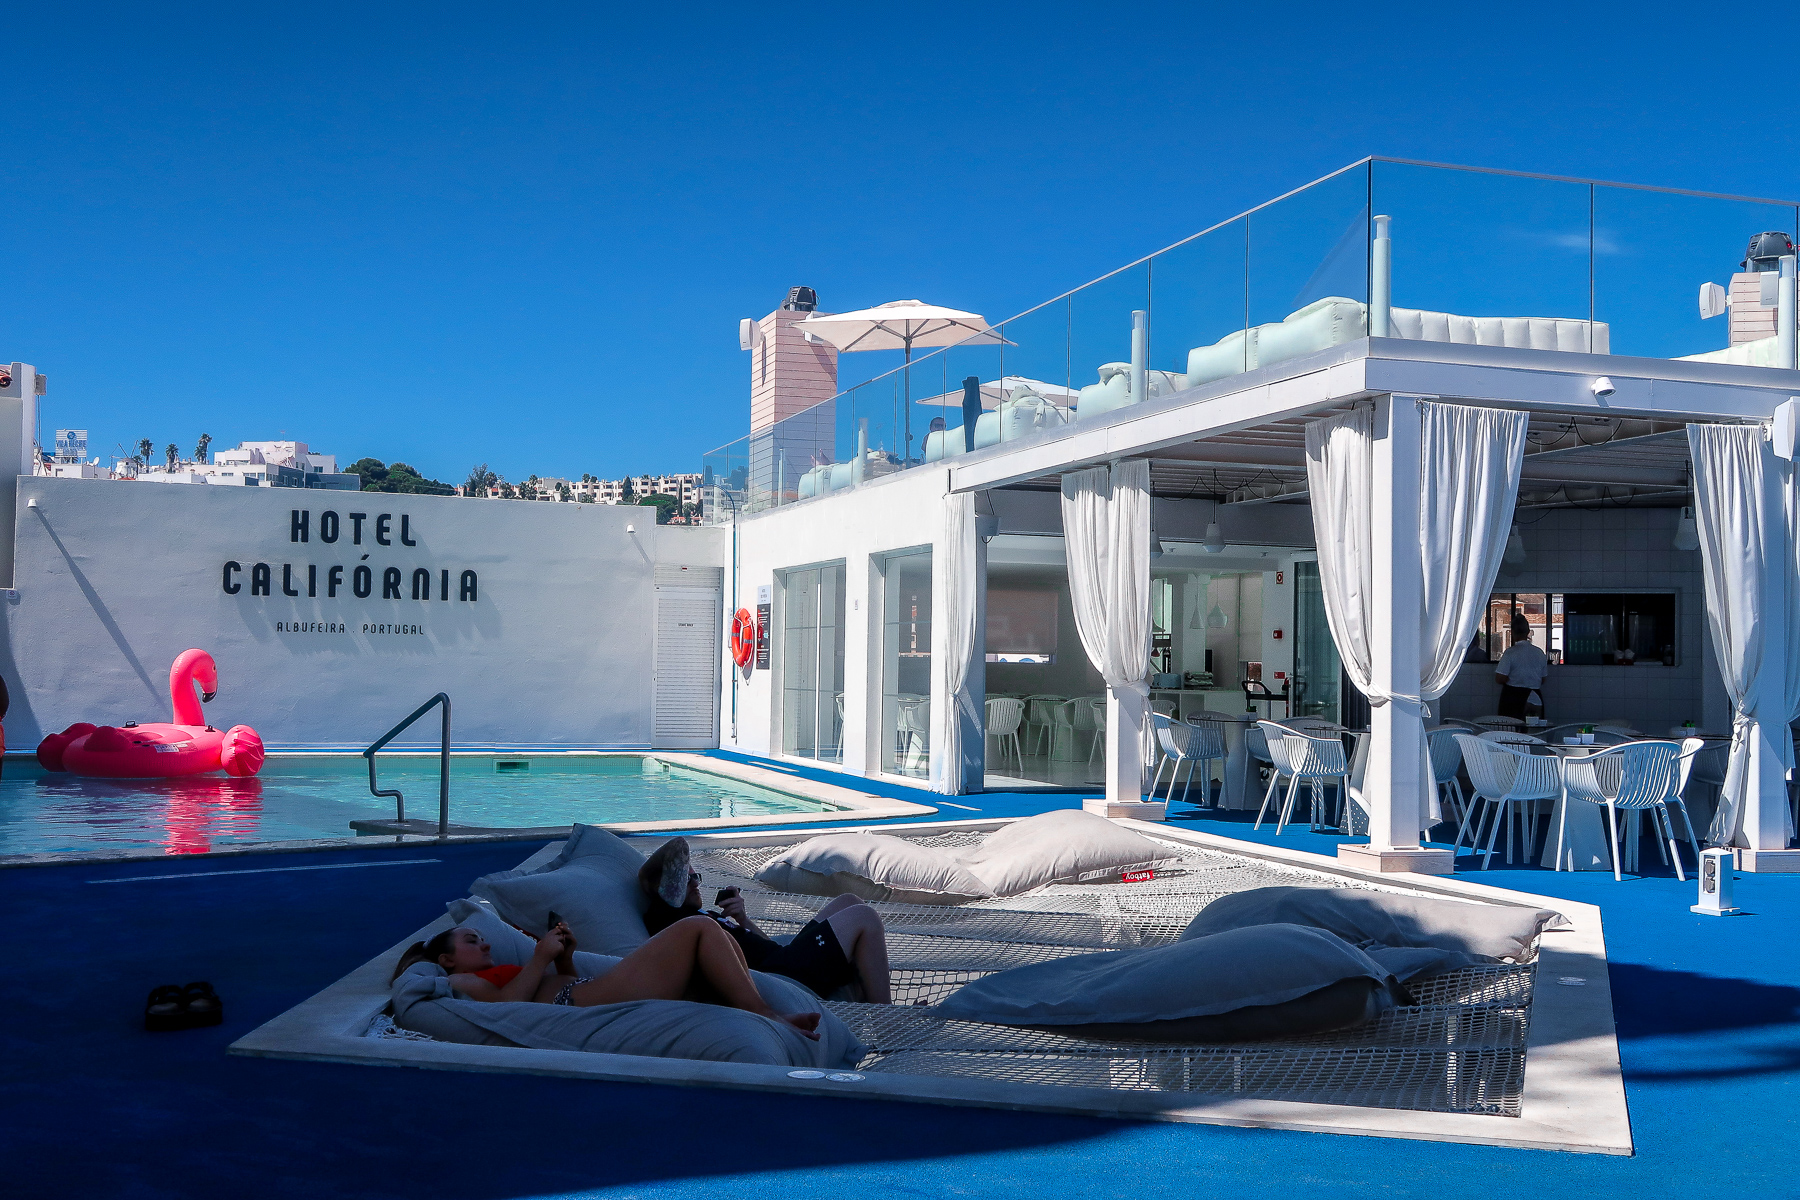 Summer Hotel Pool - Hotel California in Albuferia Old Town, The Algarve Portugal | eco-friendly, vegan, adults-only hotel with a modern twist | On The Beach Holidays Review | Elle Blonde Luxury Lifestyle Destination Travel Blog